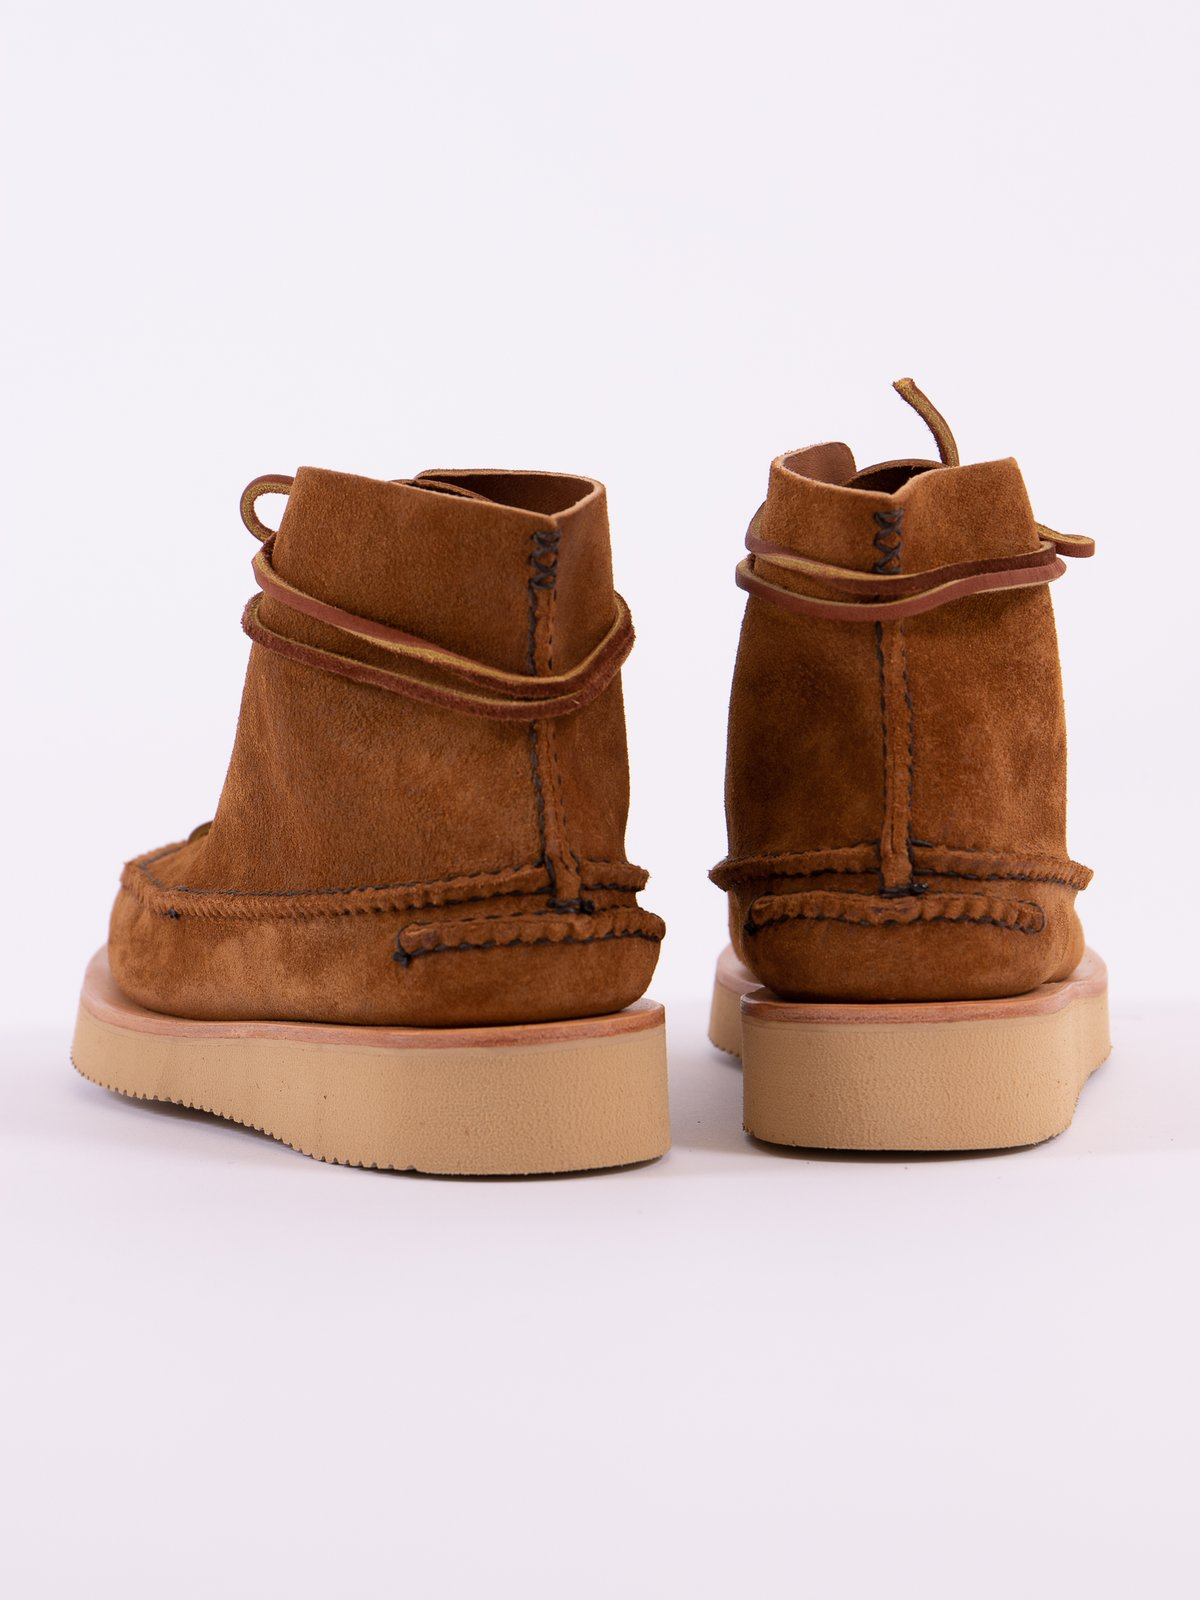 Golden Brown All Handsewn Sneaker Moc High Boot - Image 7